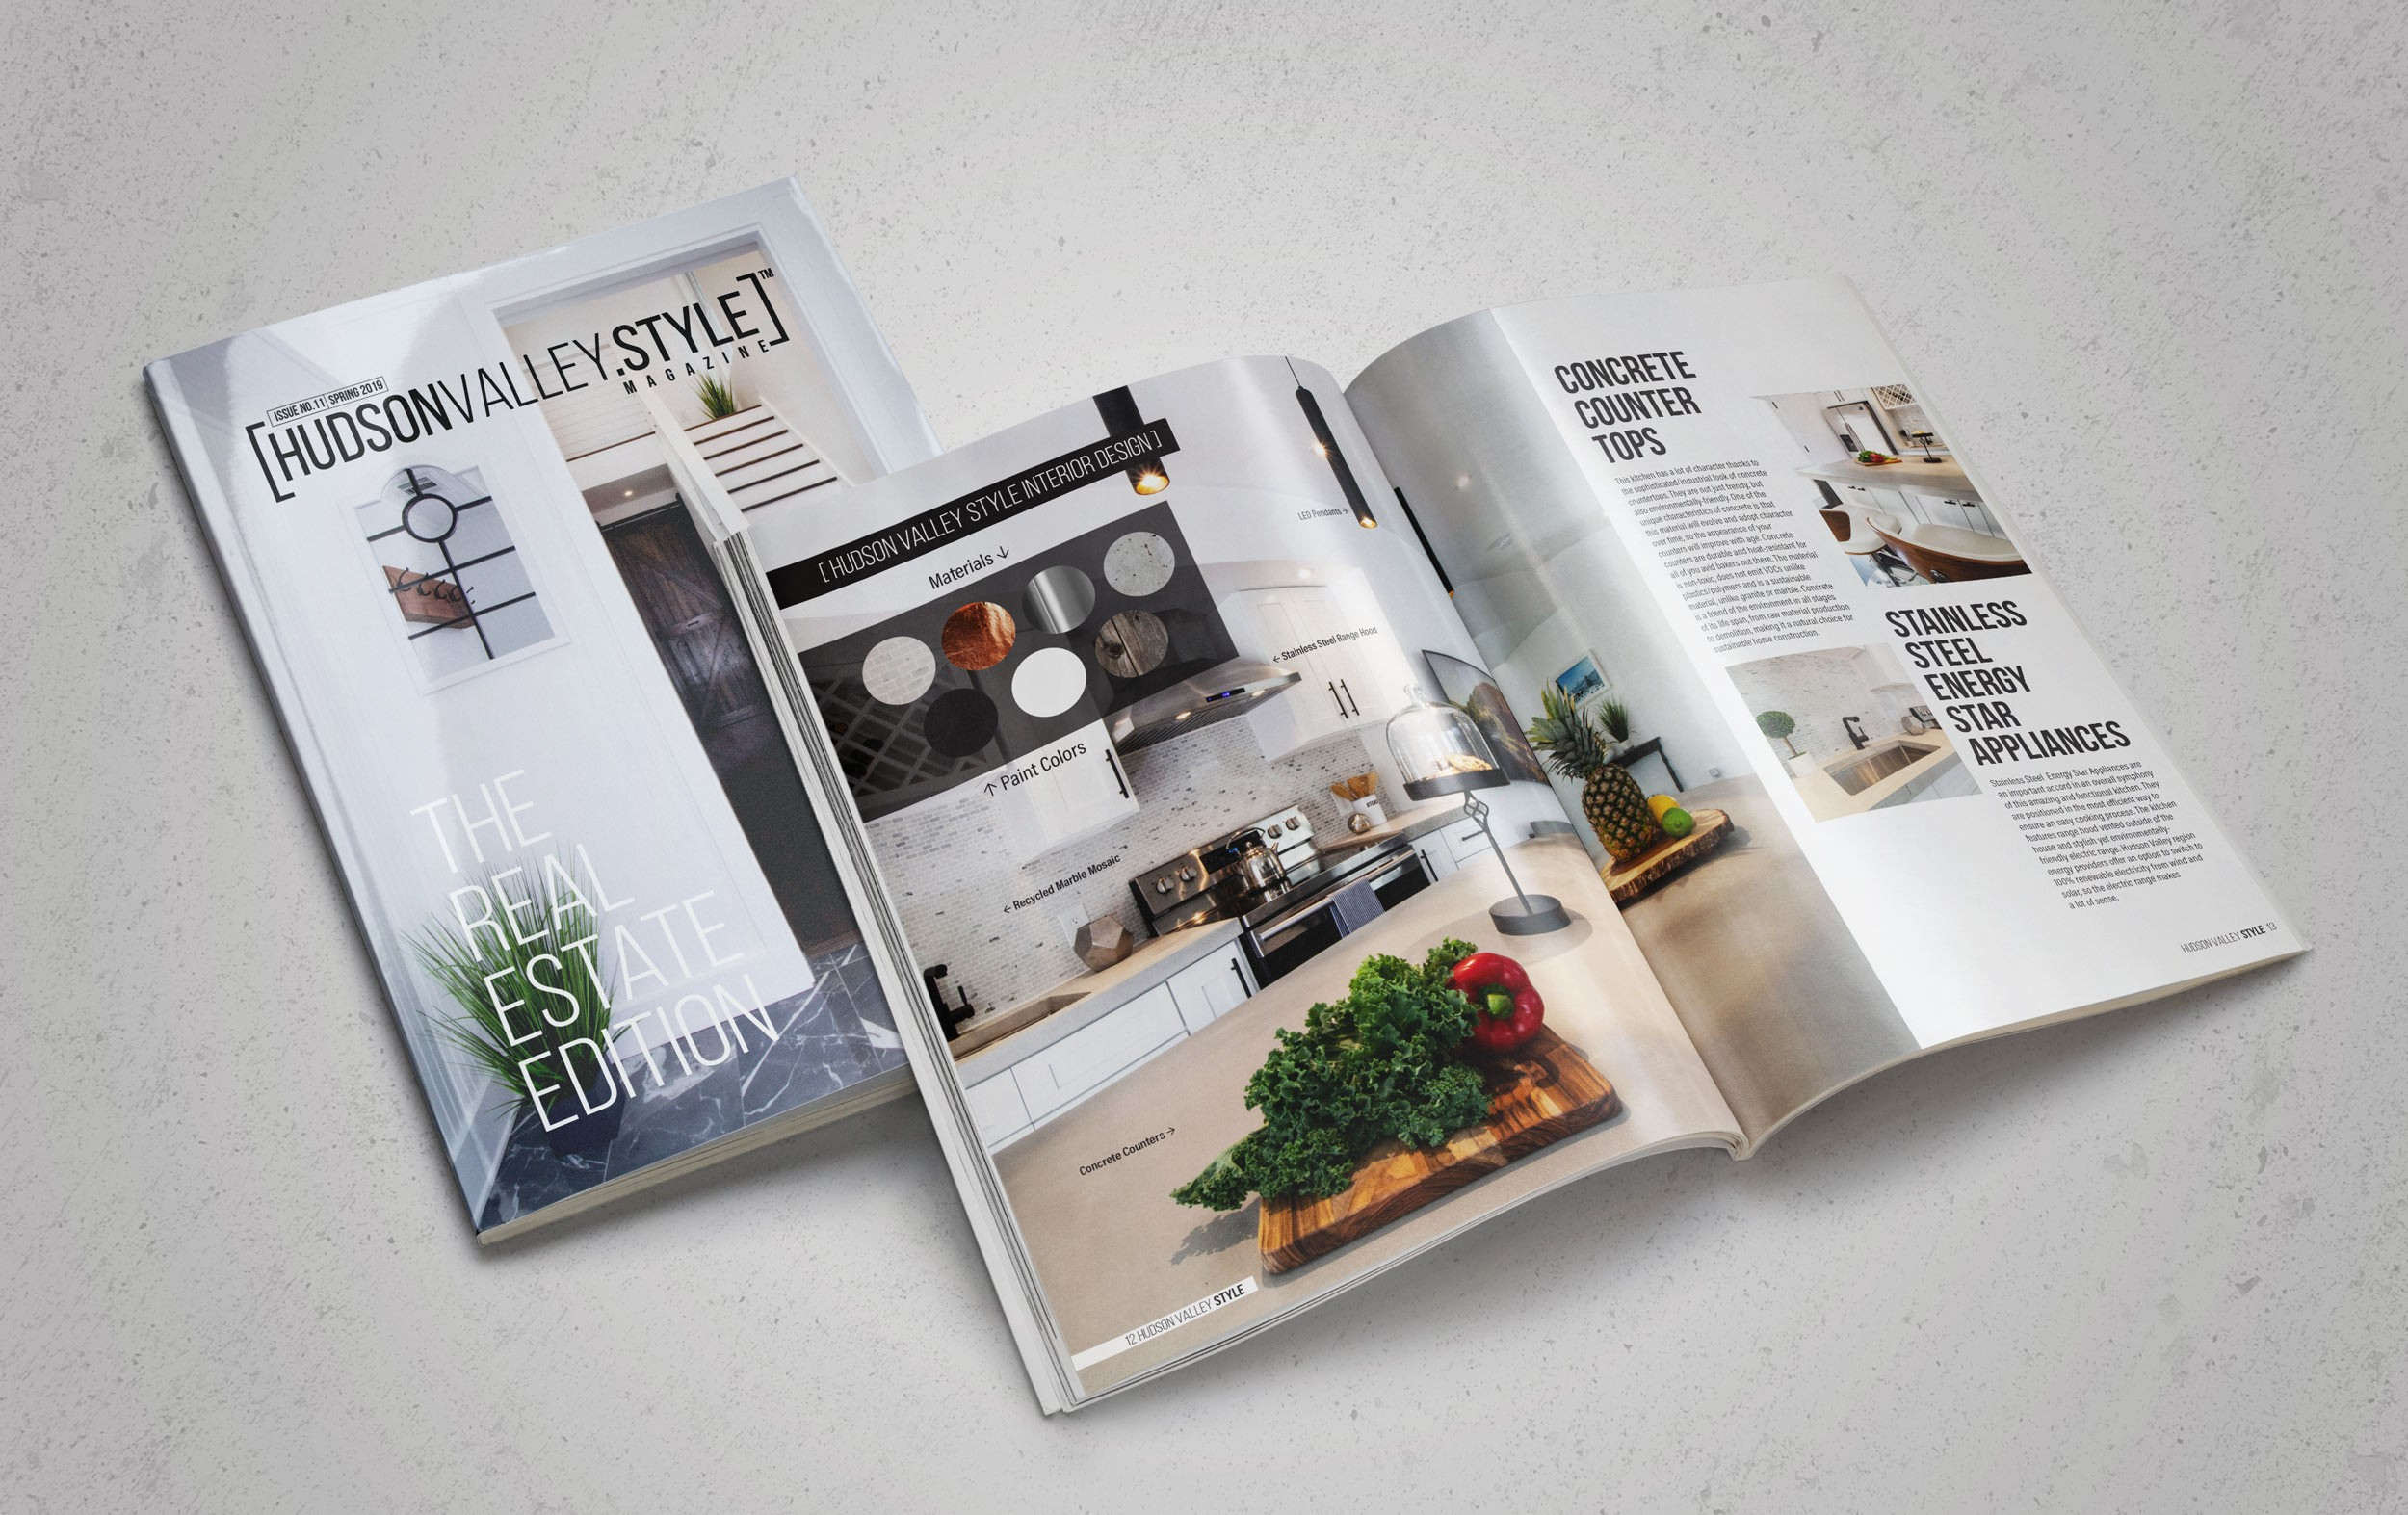 Hudson Valley Style Magazine - Interior Design and Renovation Project by Duncan Avenue Design Studio in Hudson Valley, Cornwall on Hudson, NY